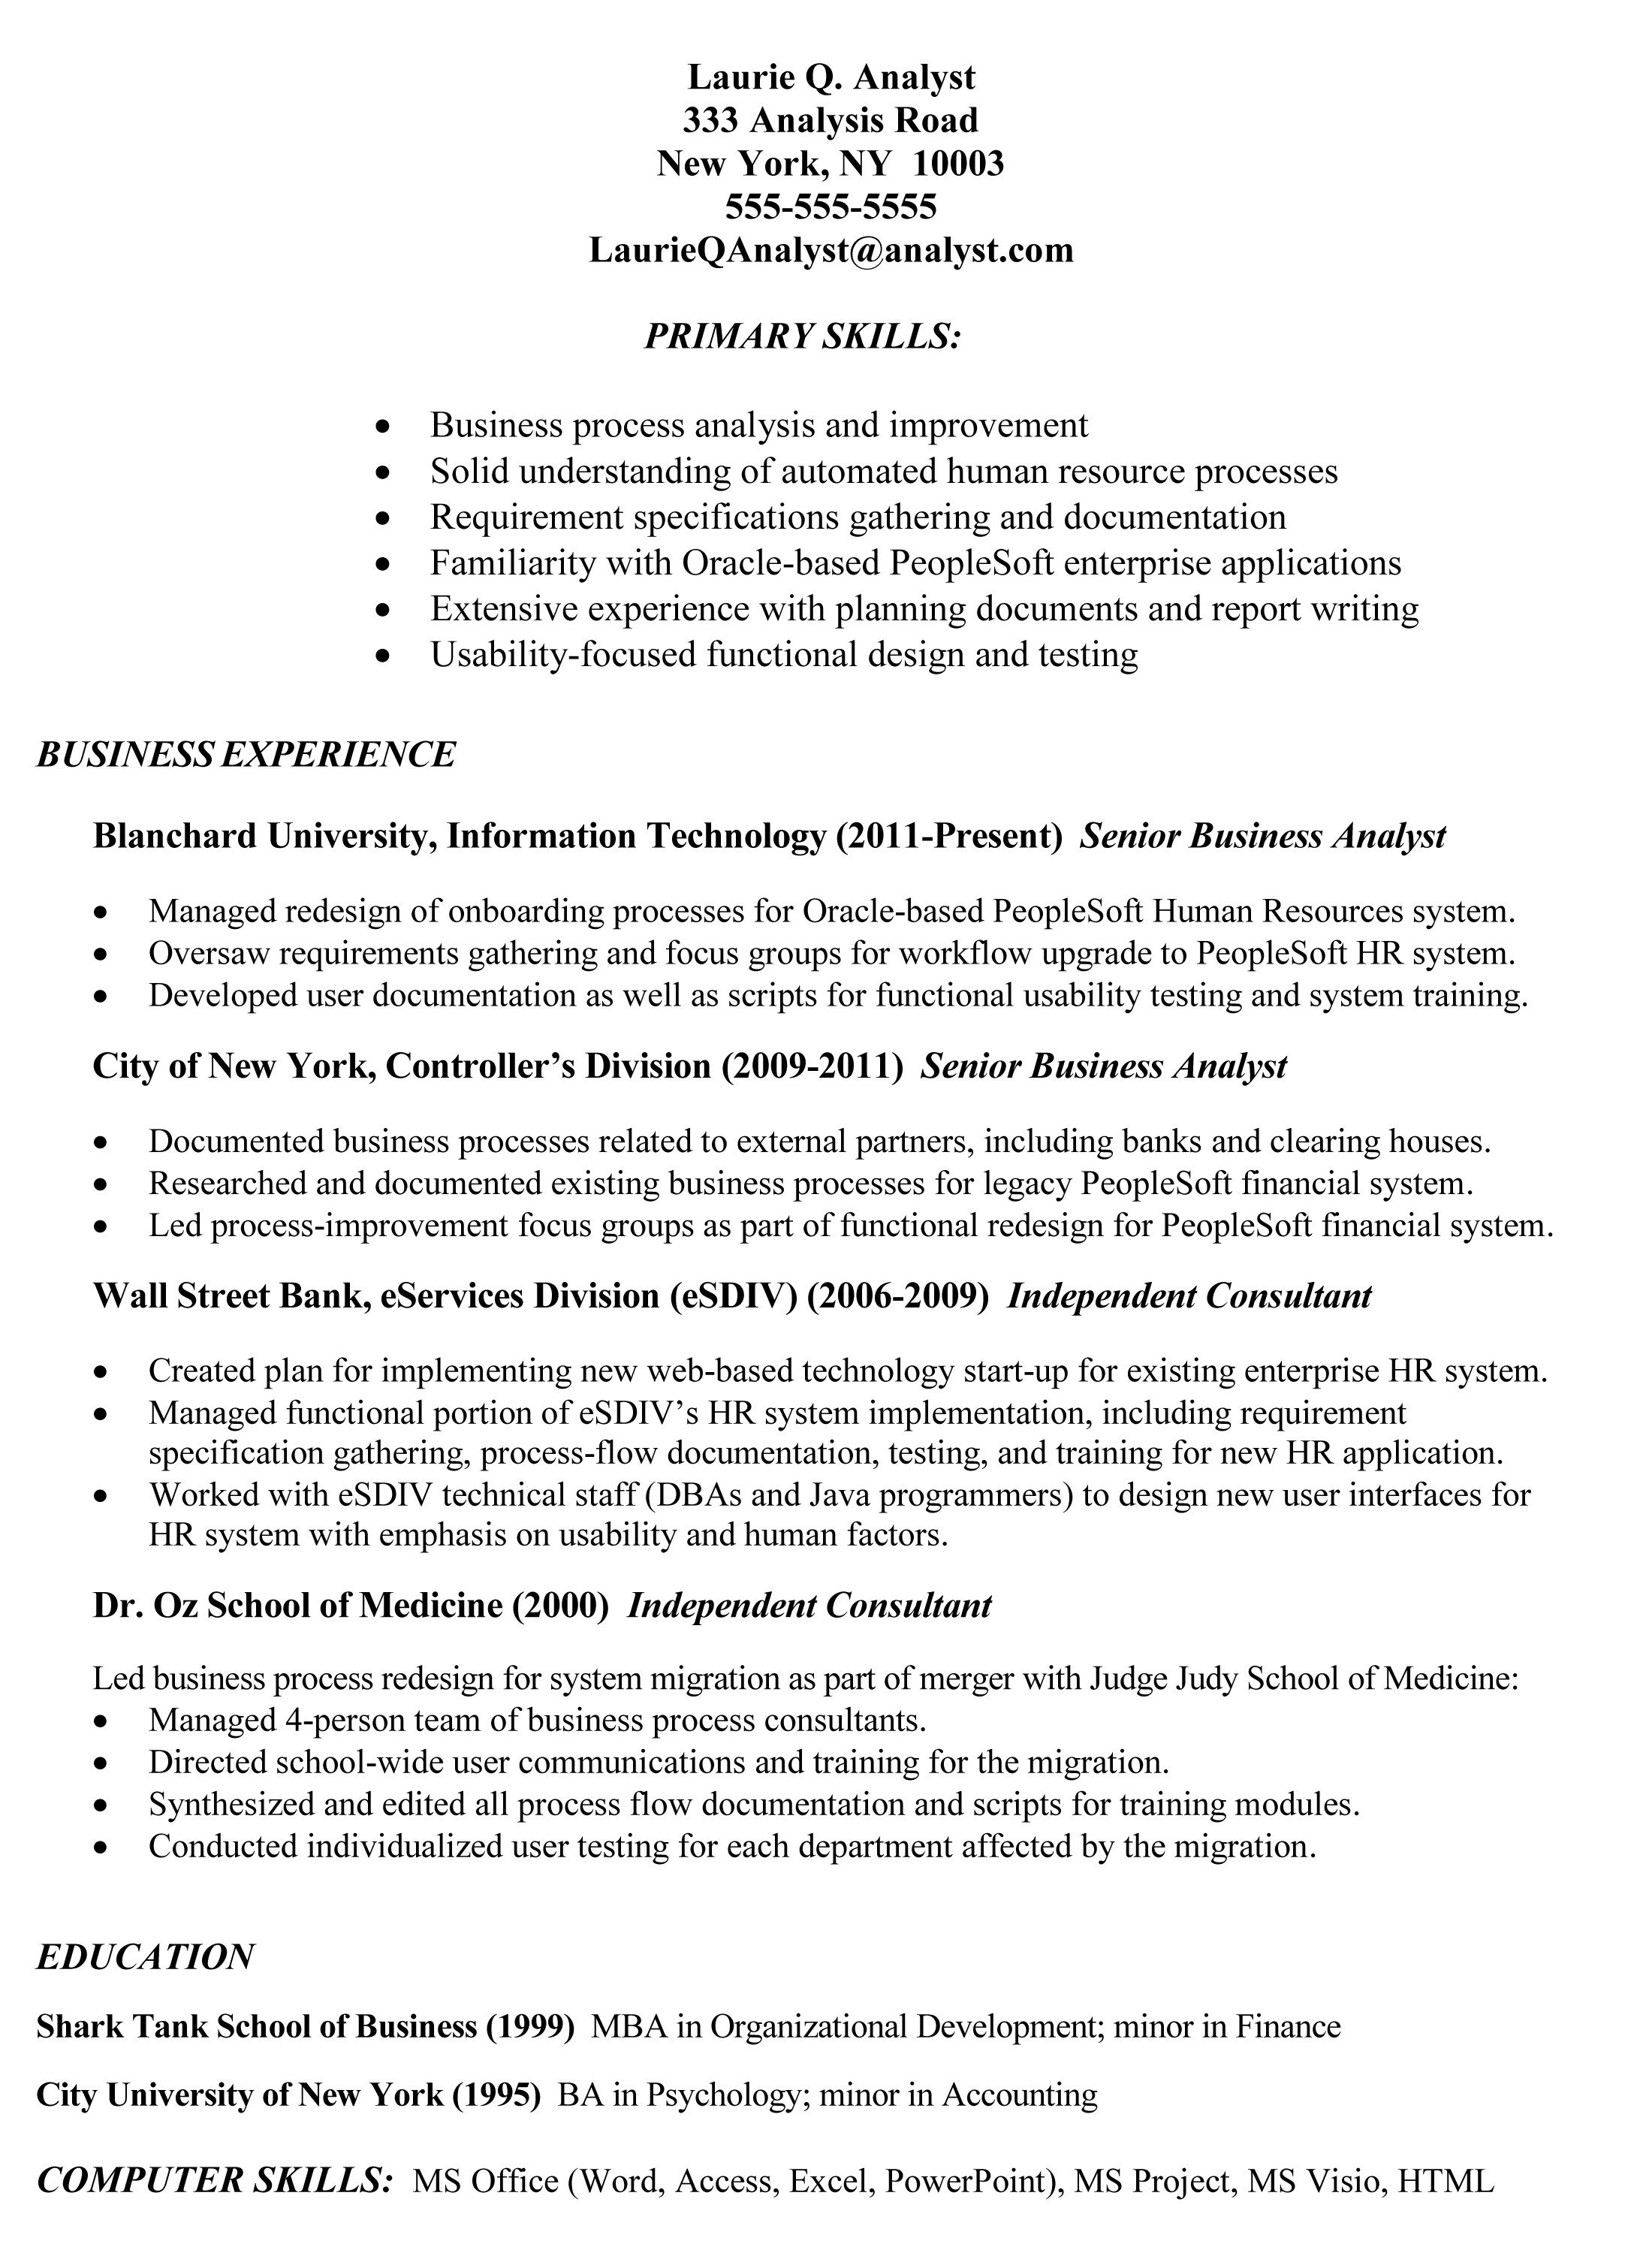 Resume Format For Analyst Pin By Topresumes On Latest Resume Sample Resume Resume